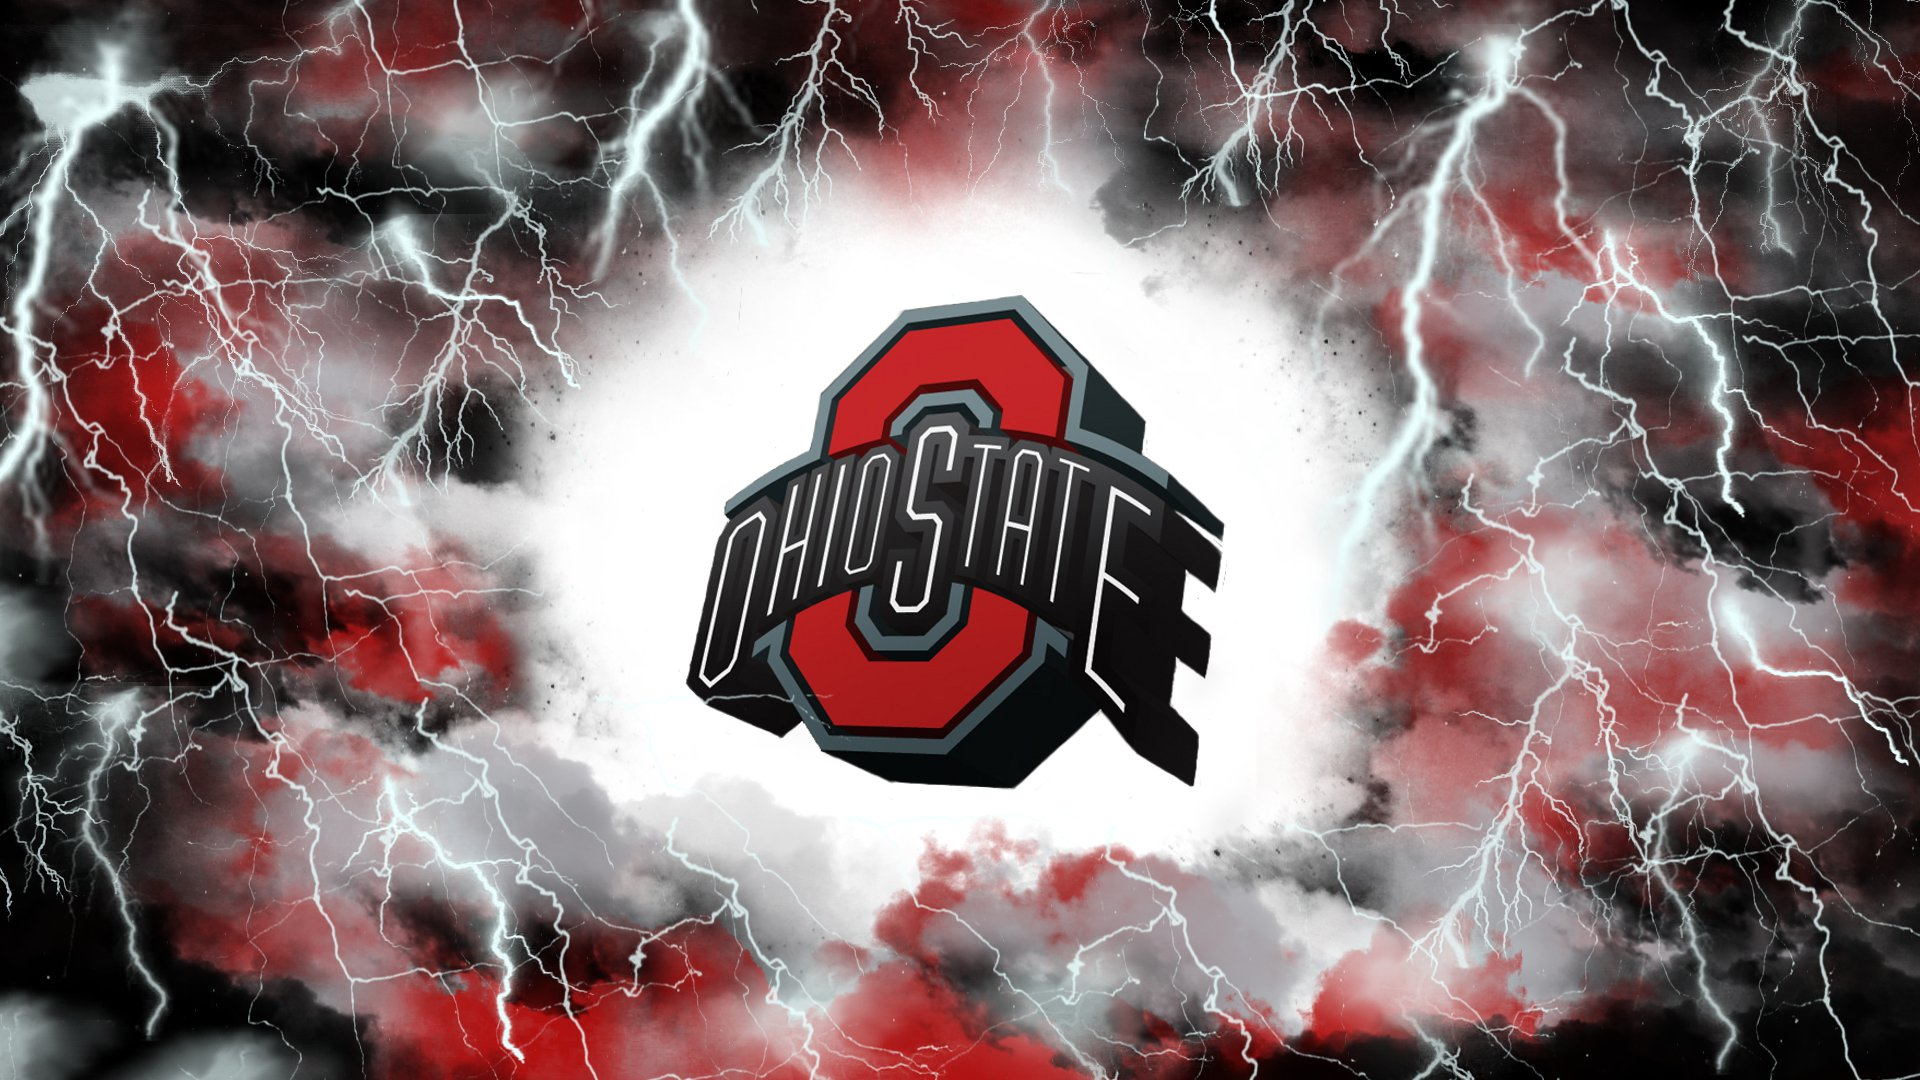 OSU Wallpaper - Ohio State Football Wallpaper (28702258) - Fanpop ...